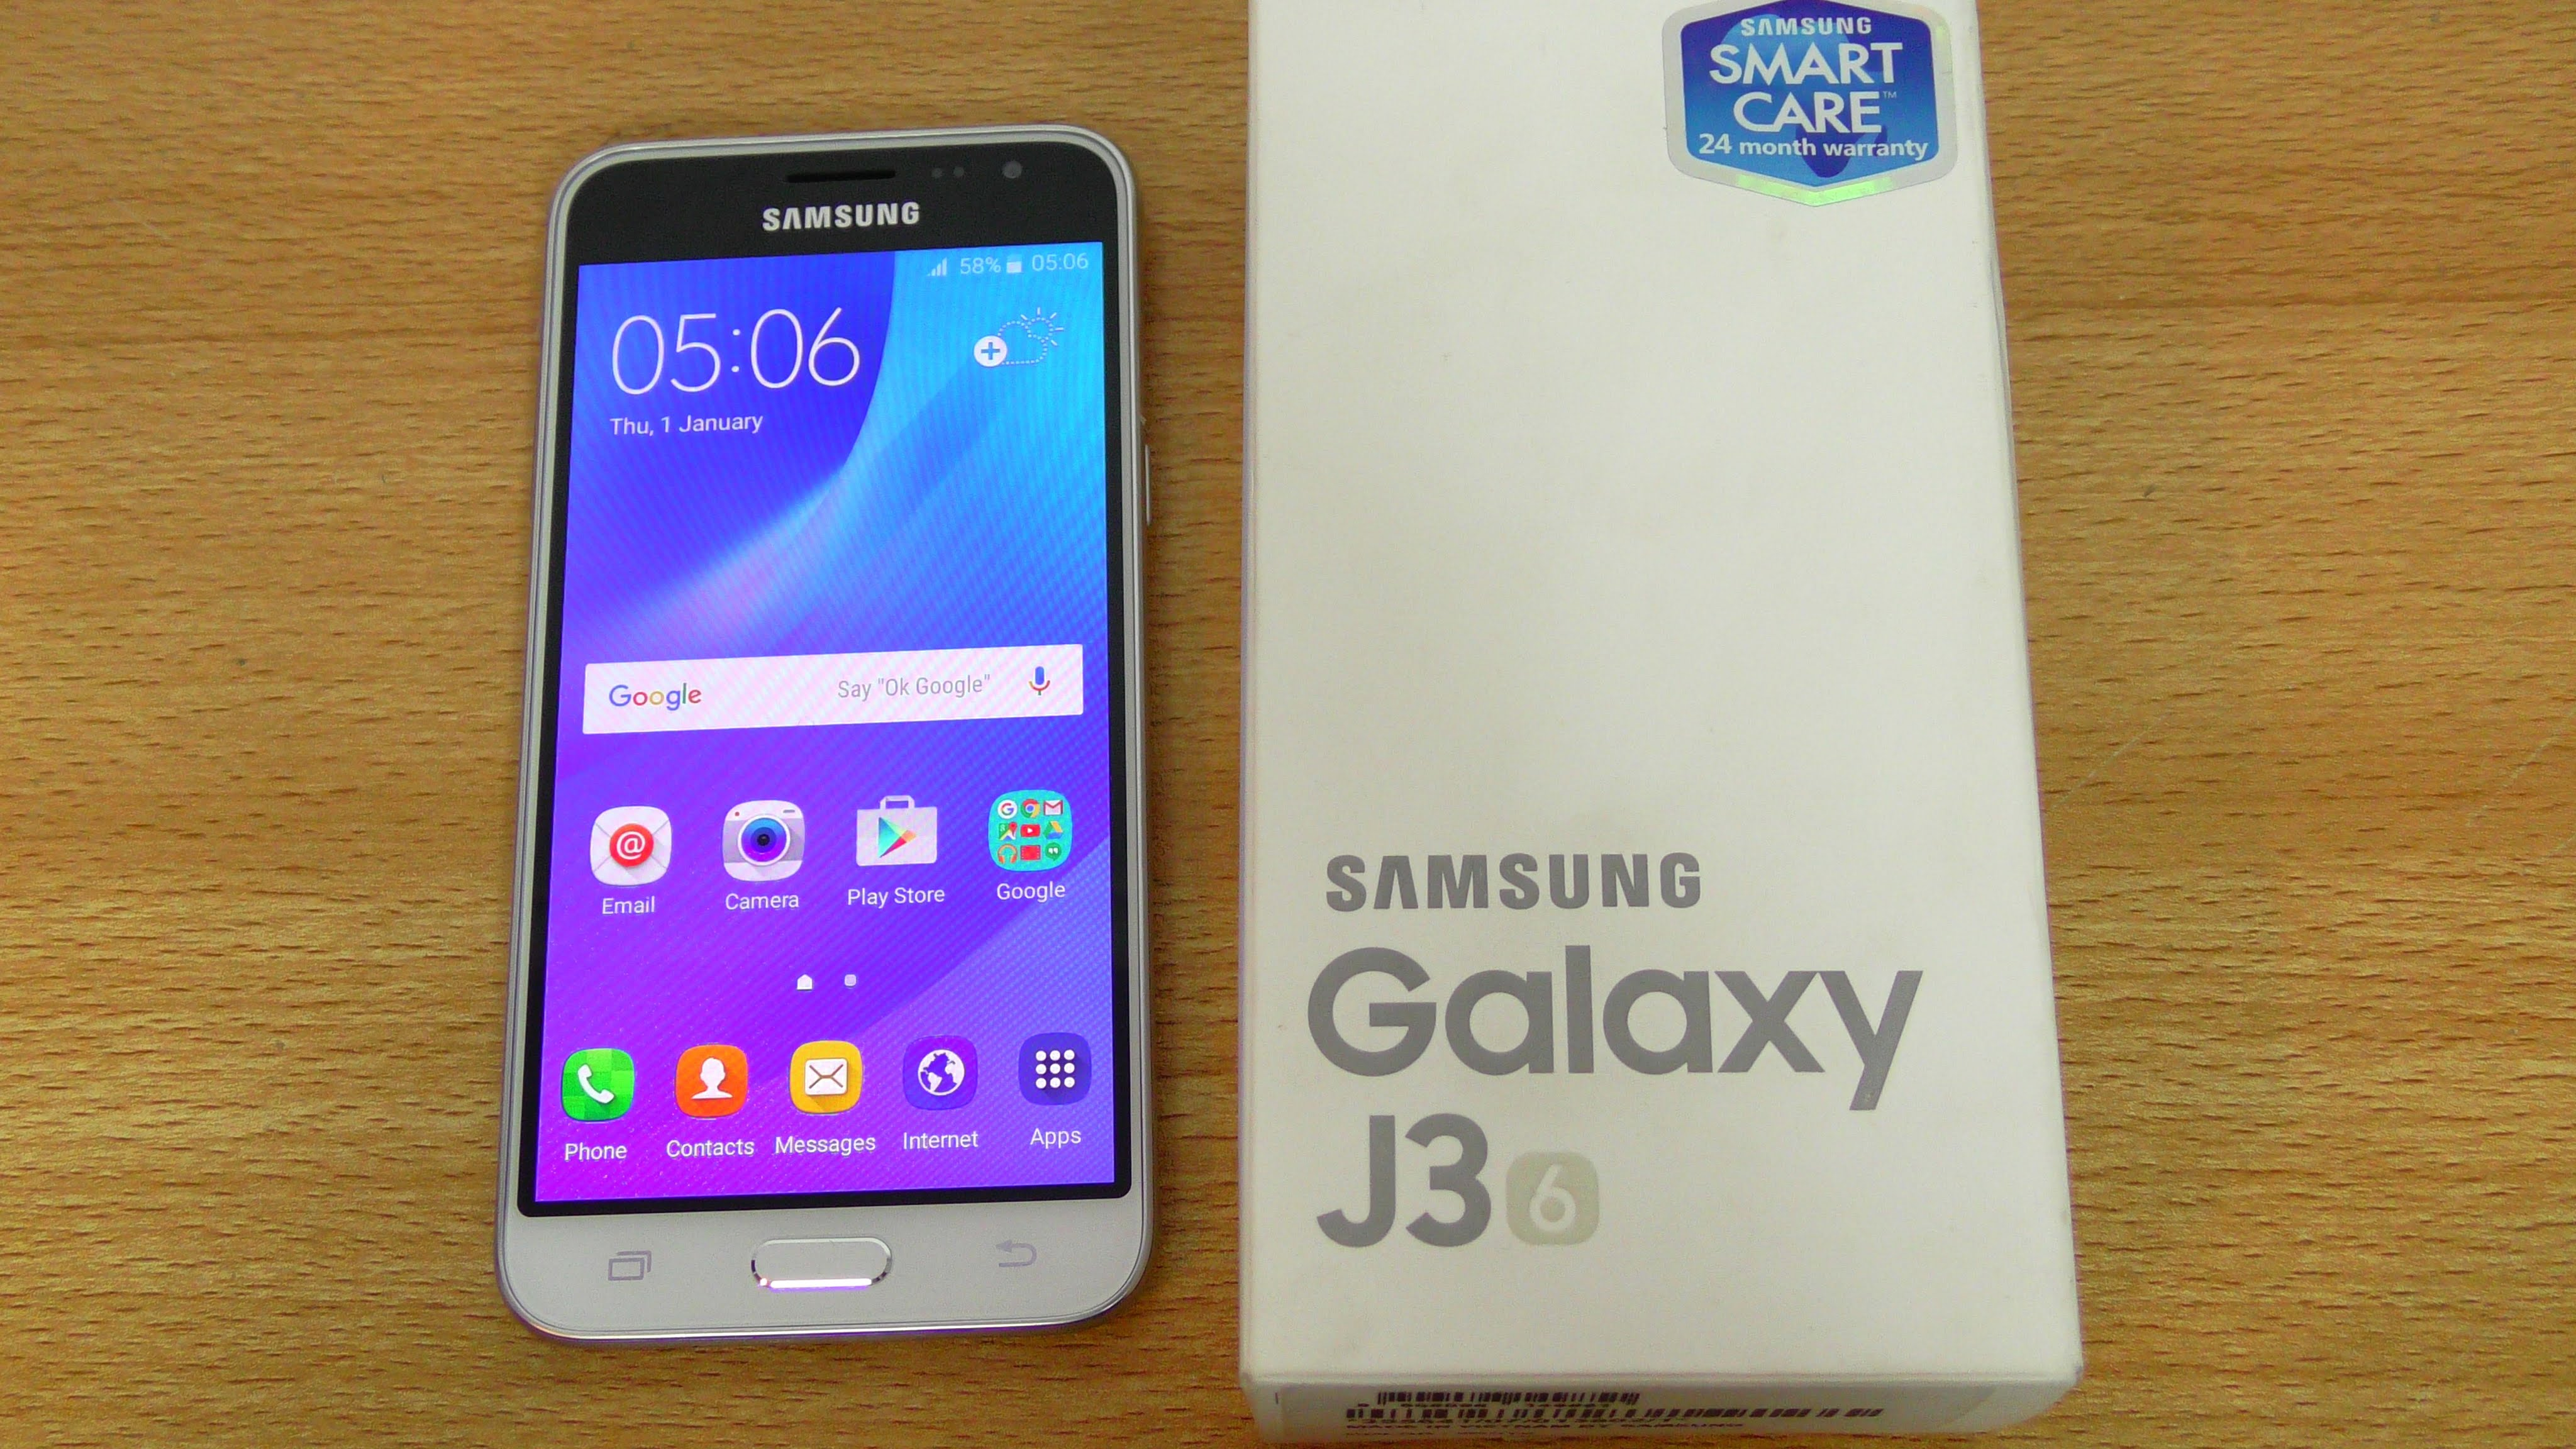 Tech] Samsung Galaxy J3 Review: The CHEAPEST Galaxy Phone Around